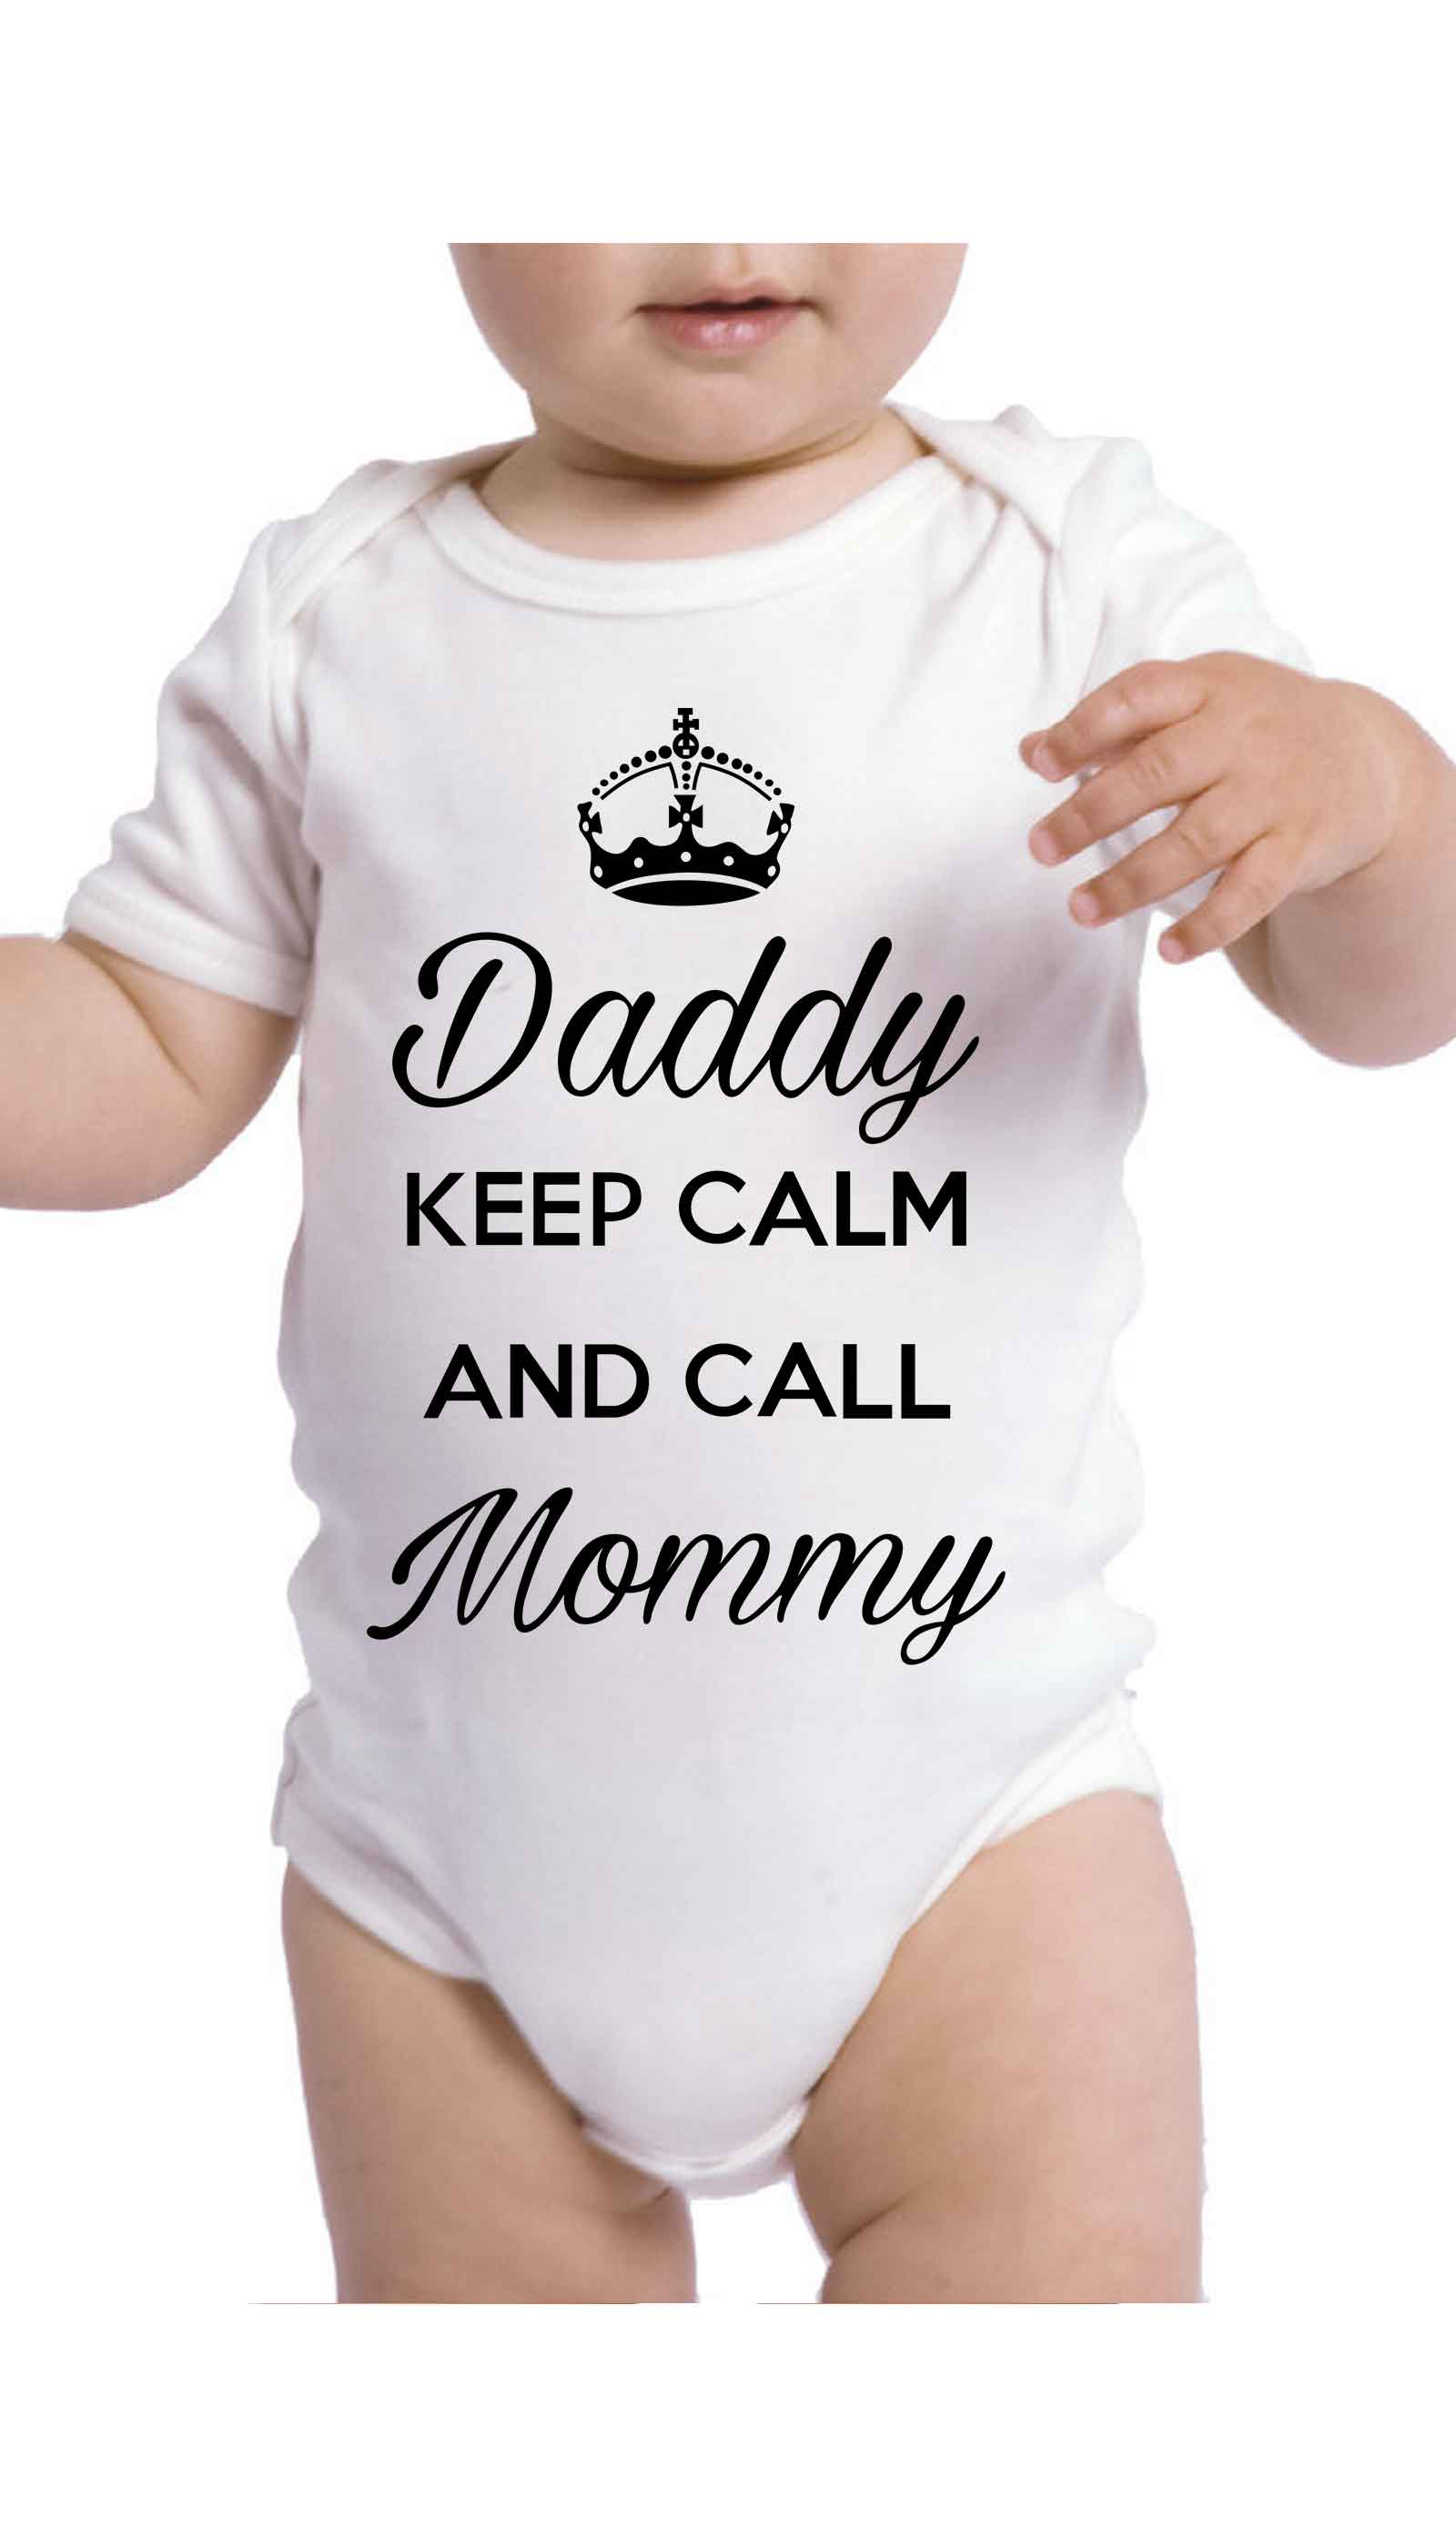 Daddy Keep Calm And Call Mommy Funny Baby Infant Onesie